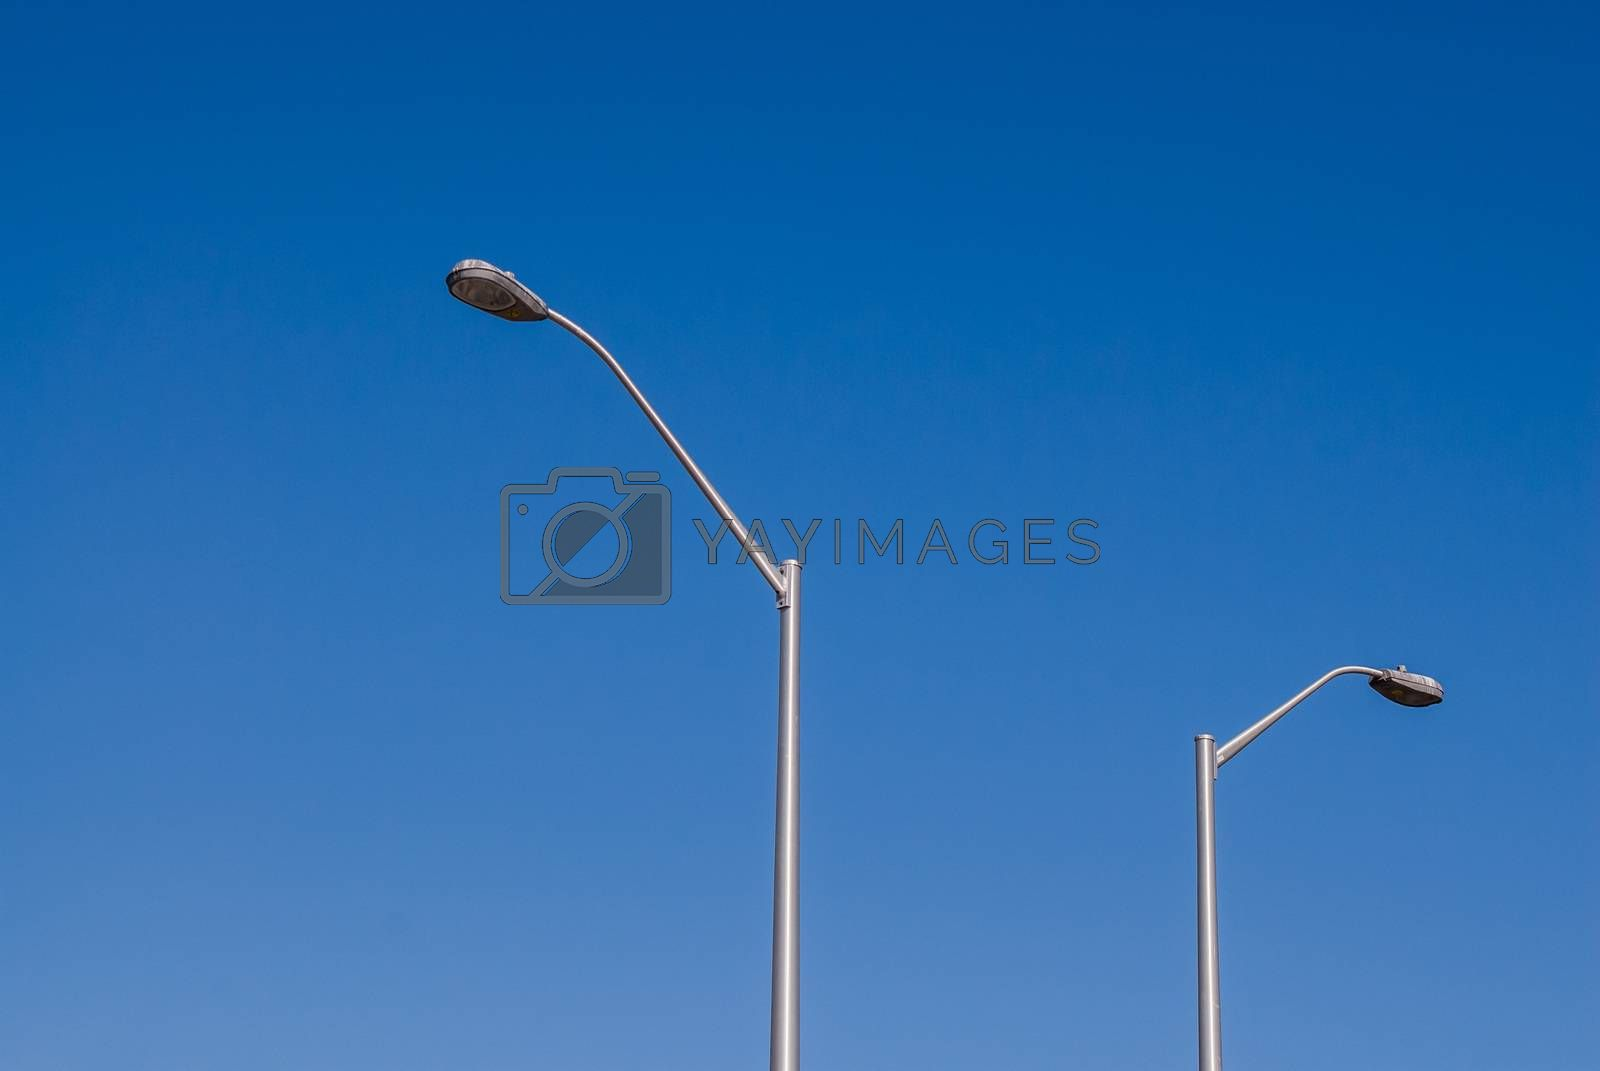 Two tall metallic street lights against clear empty blue sky.